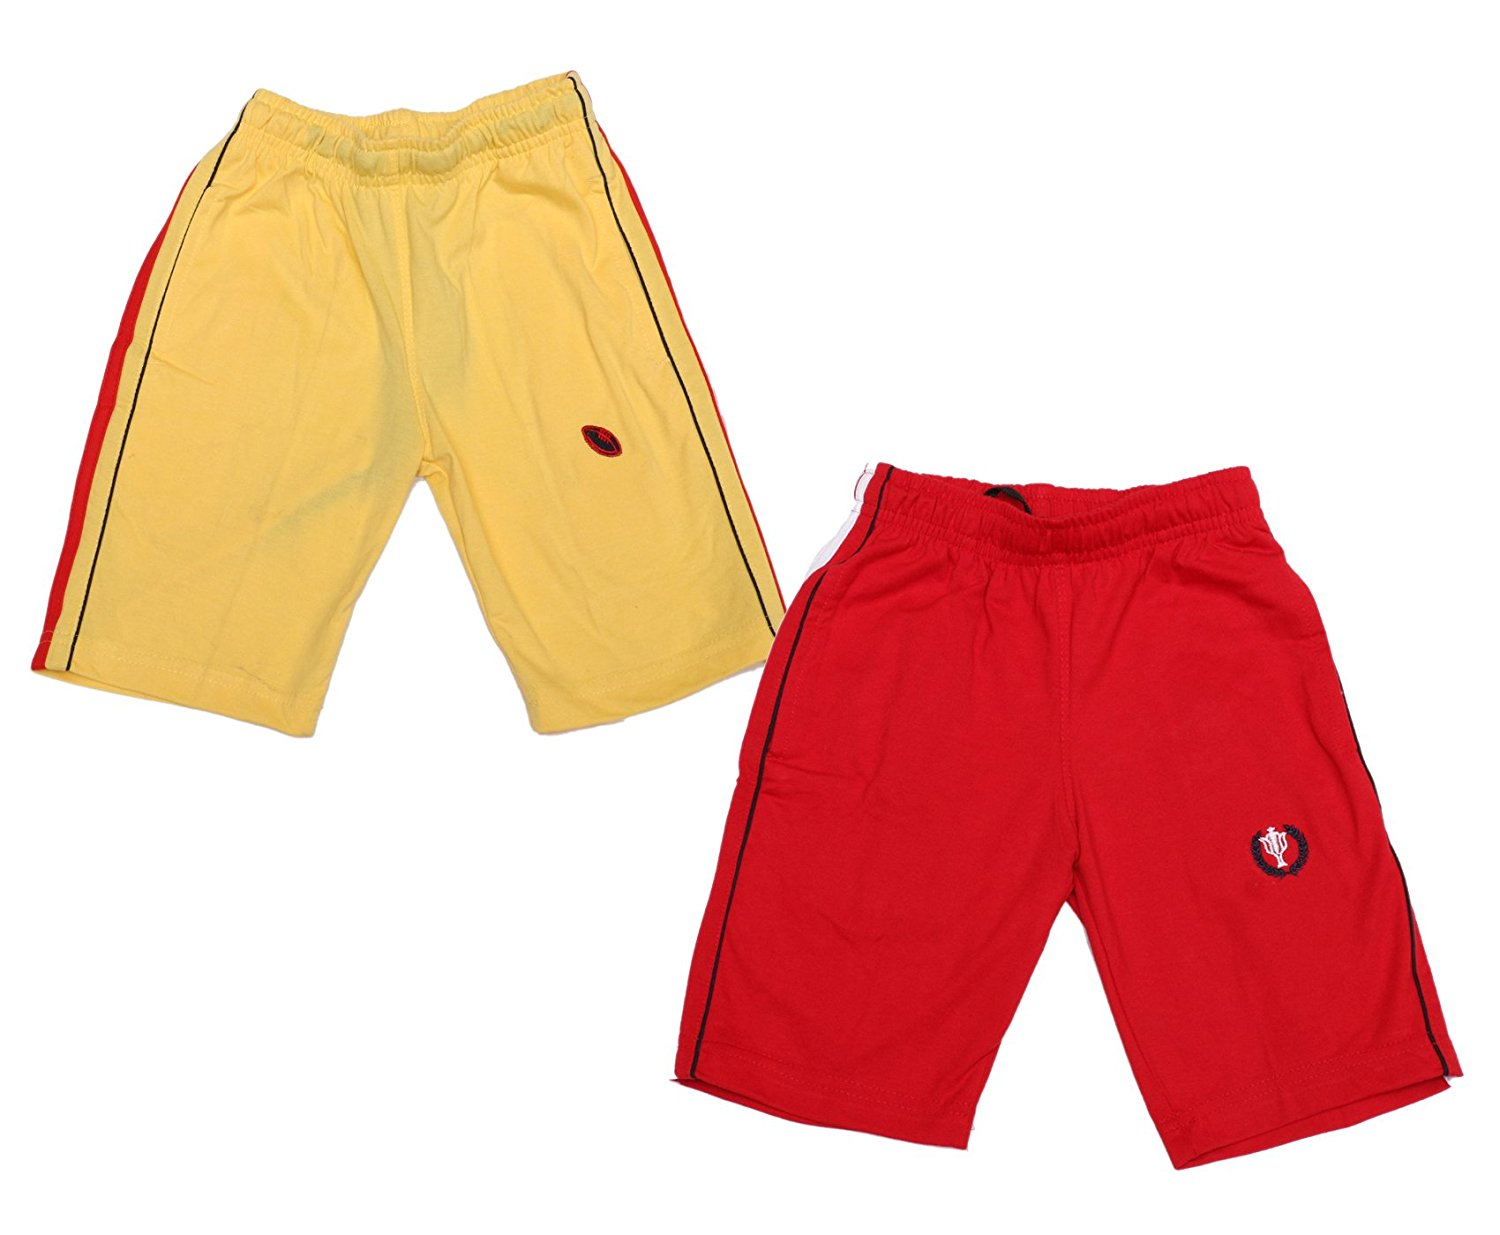 0a6fc2a96ae Get Quotations · Indistar Boy Summer Wear Cotton Regular Fit Bermuda/Shorts  -Red/Yellow- Pack